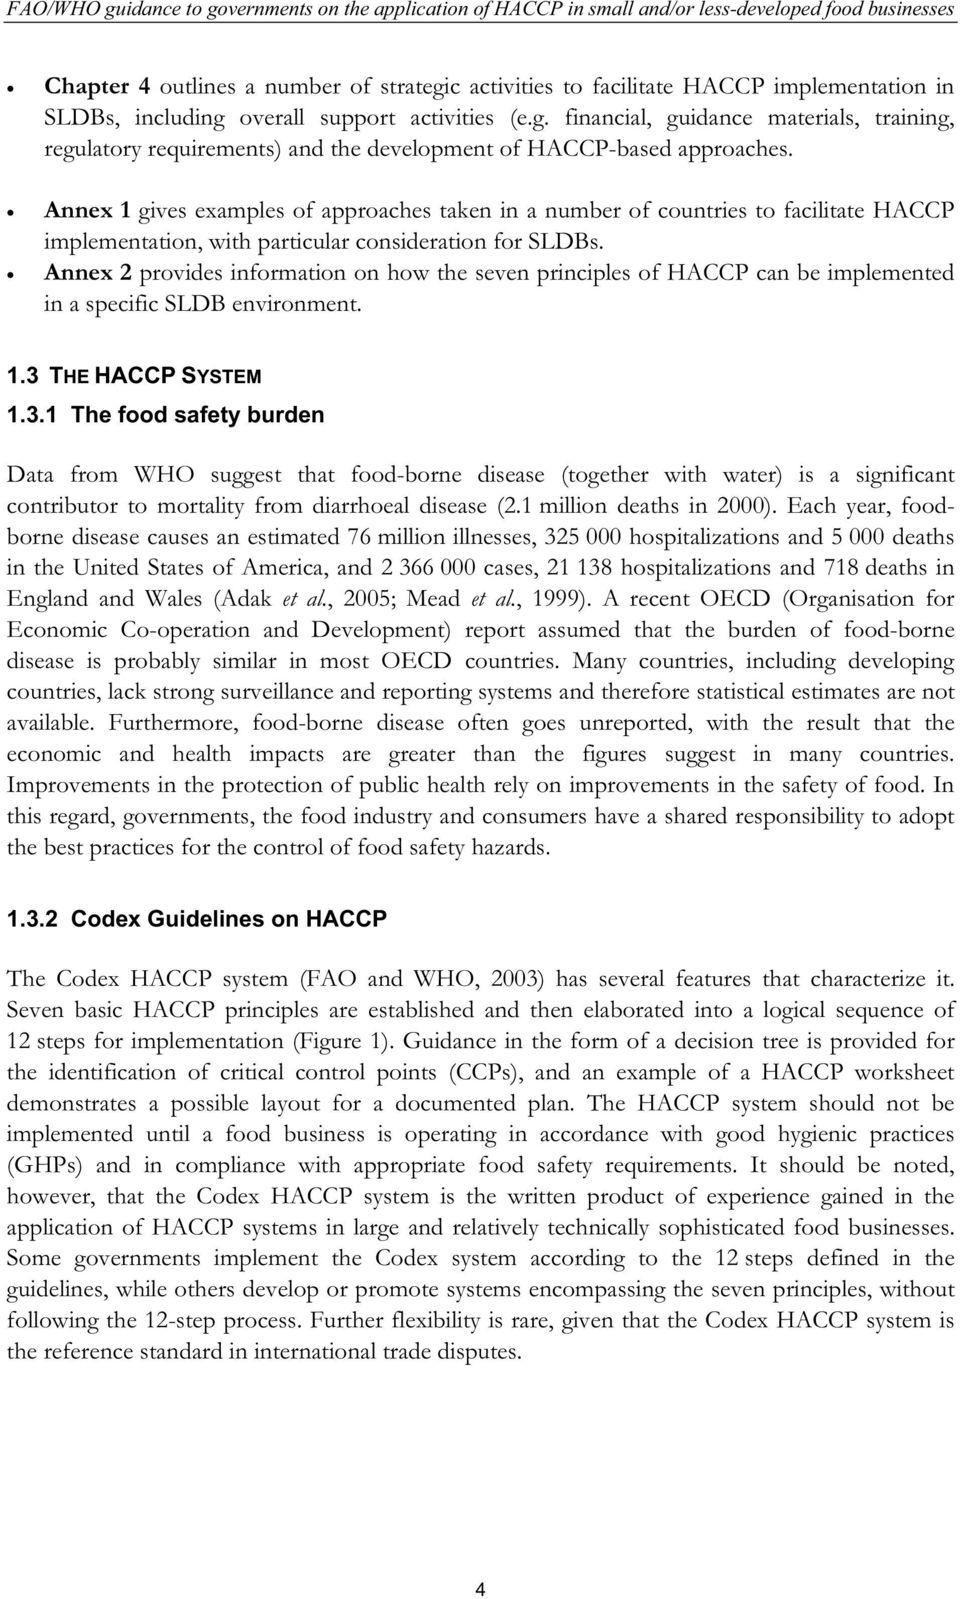 Annex 1 gives examples of approaches taken in a number of countries to facilitate HACCP implementation, with particular consideration for SLDBs.